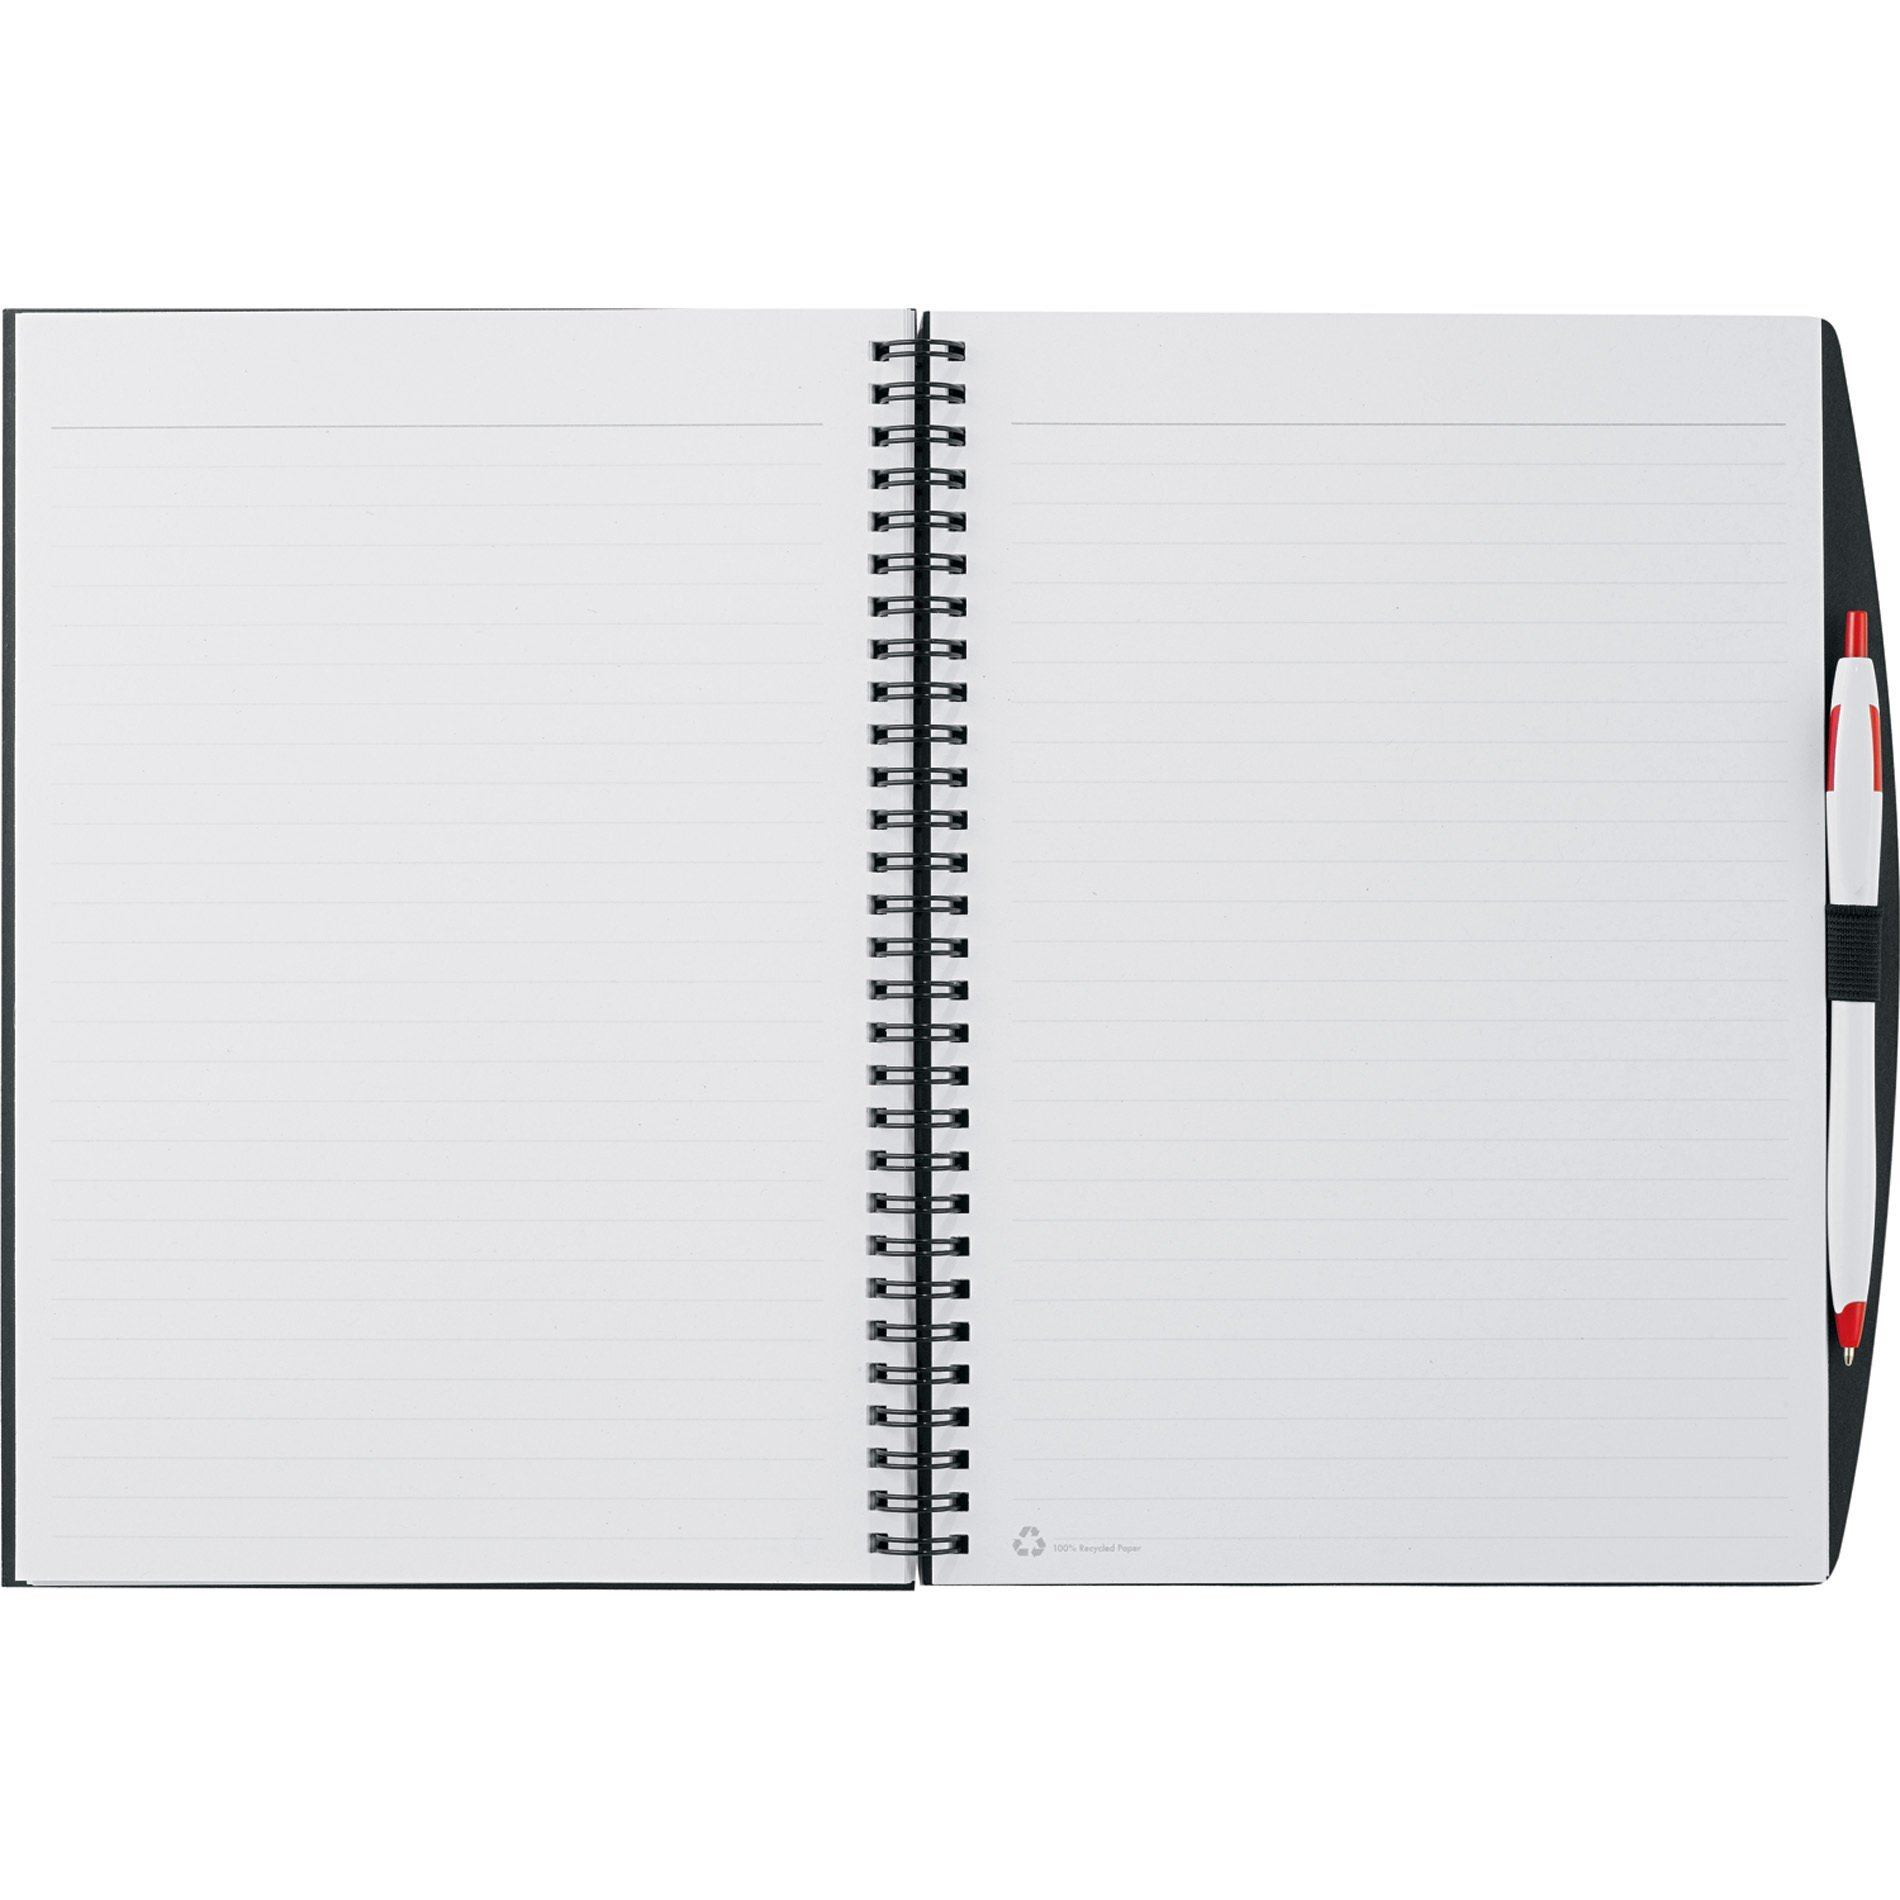 """Frame Square Large Hardcover Journal Book, 7-3/4"""" x 10"""""""